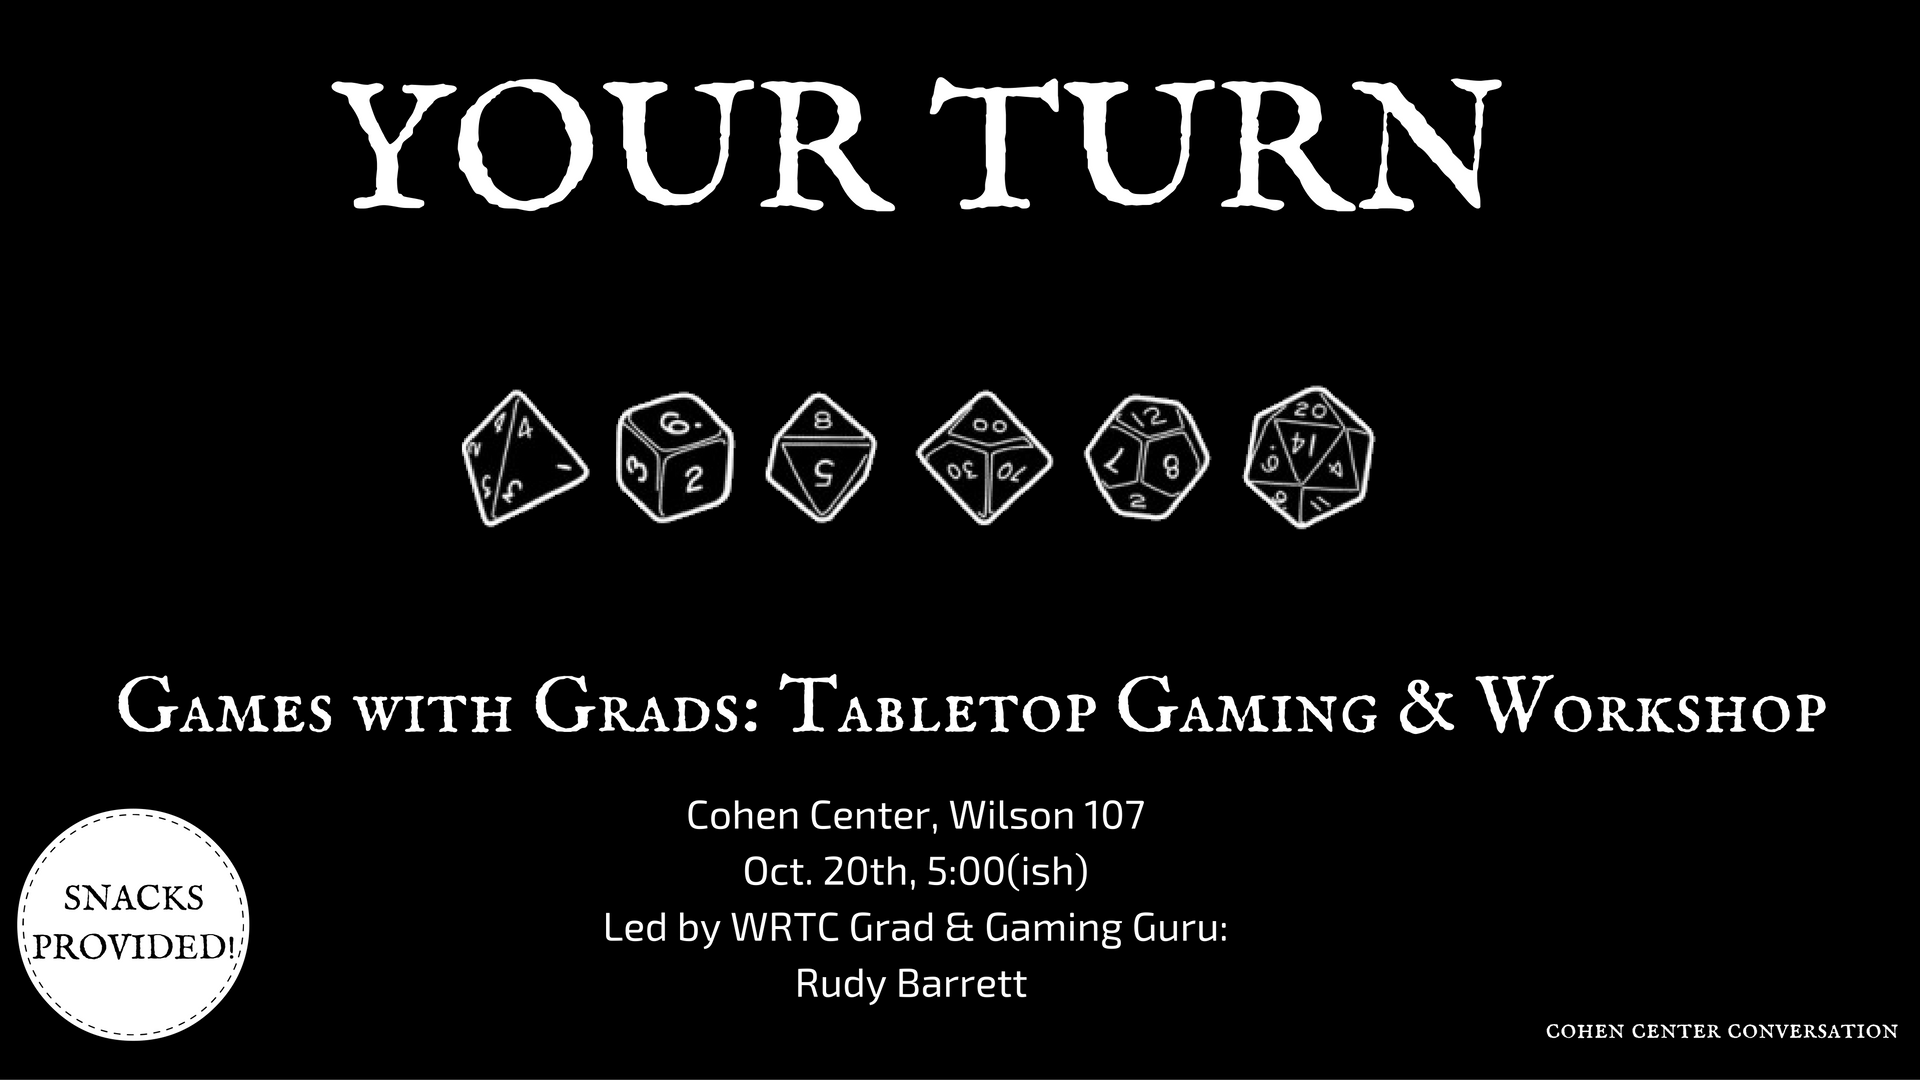 Your Turn, Games with Grads